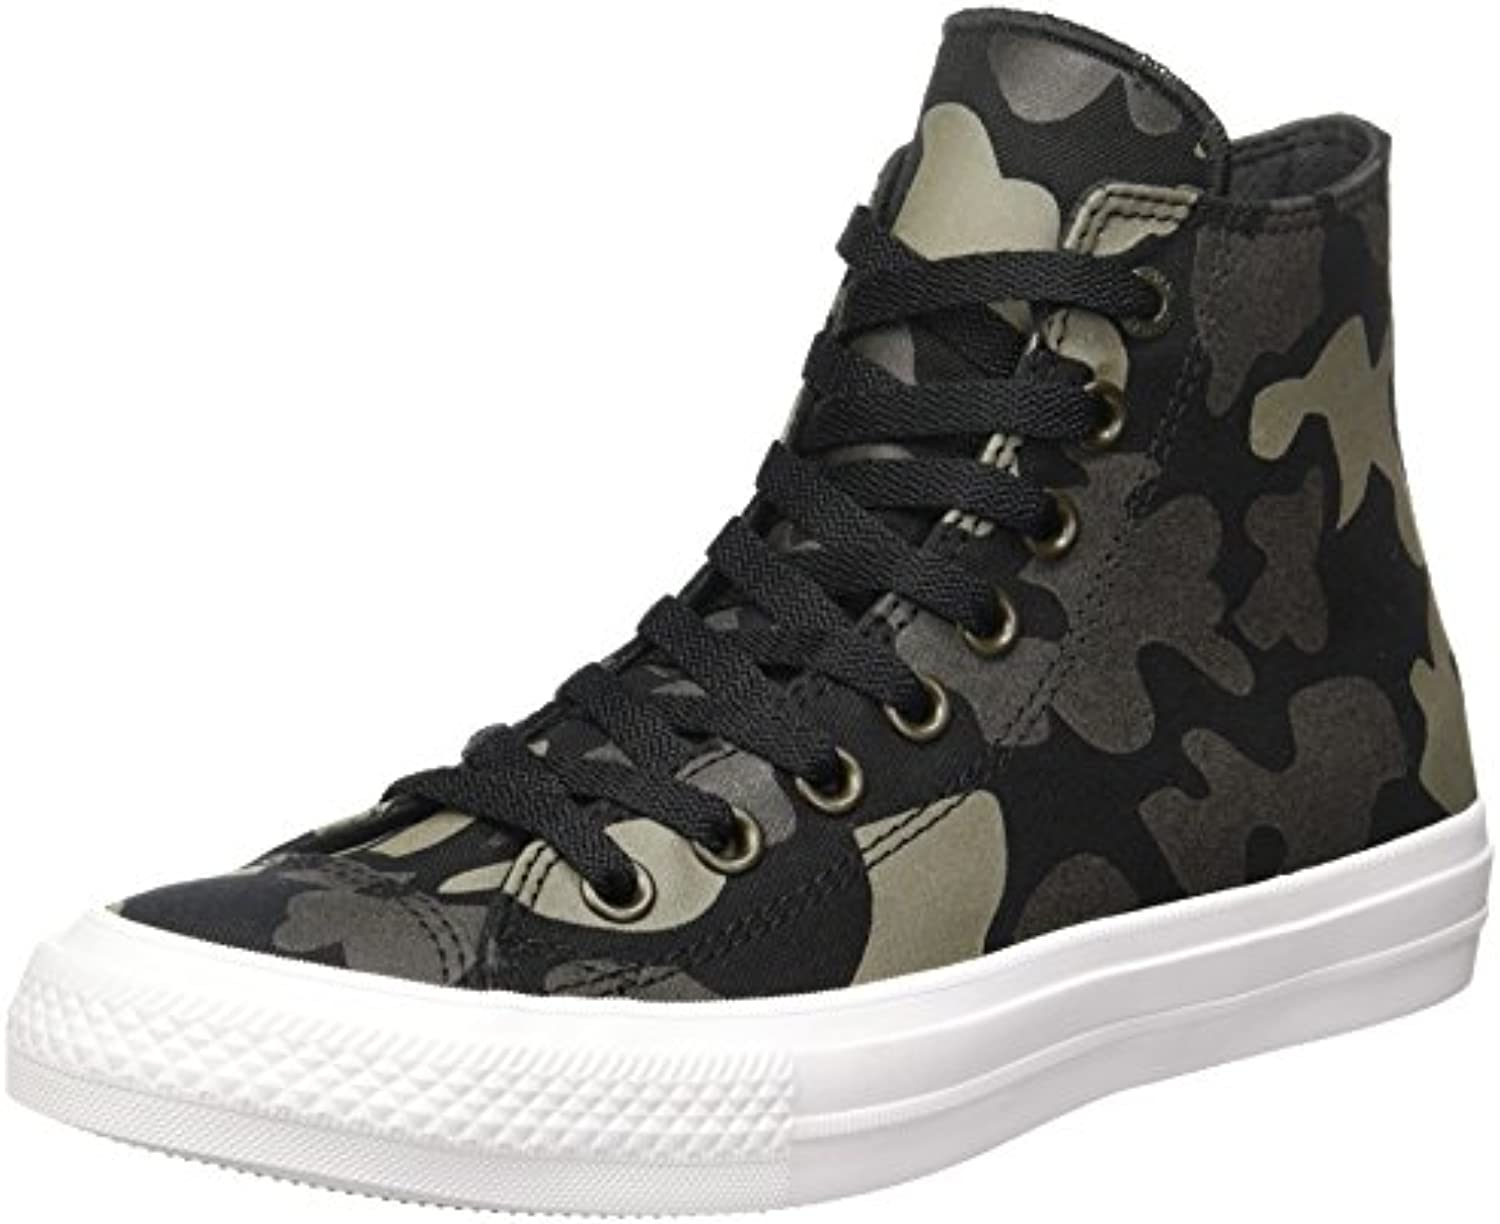 Converse Unisex-Erwachsene Chuck Taylor All Star Ii Reflective Camo High-Top